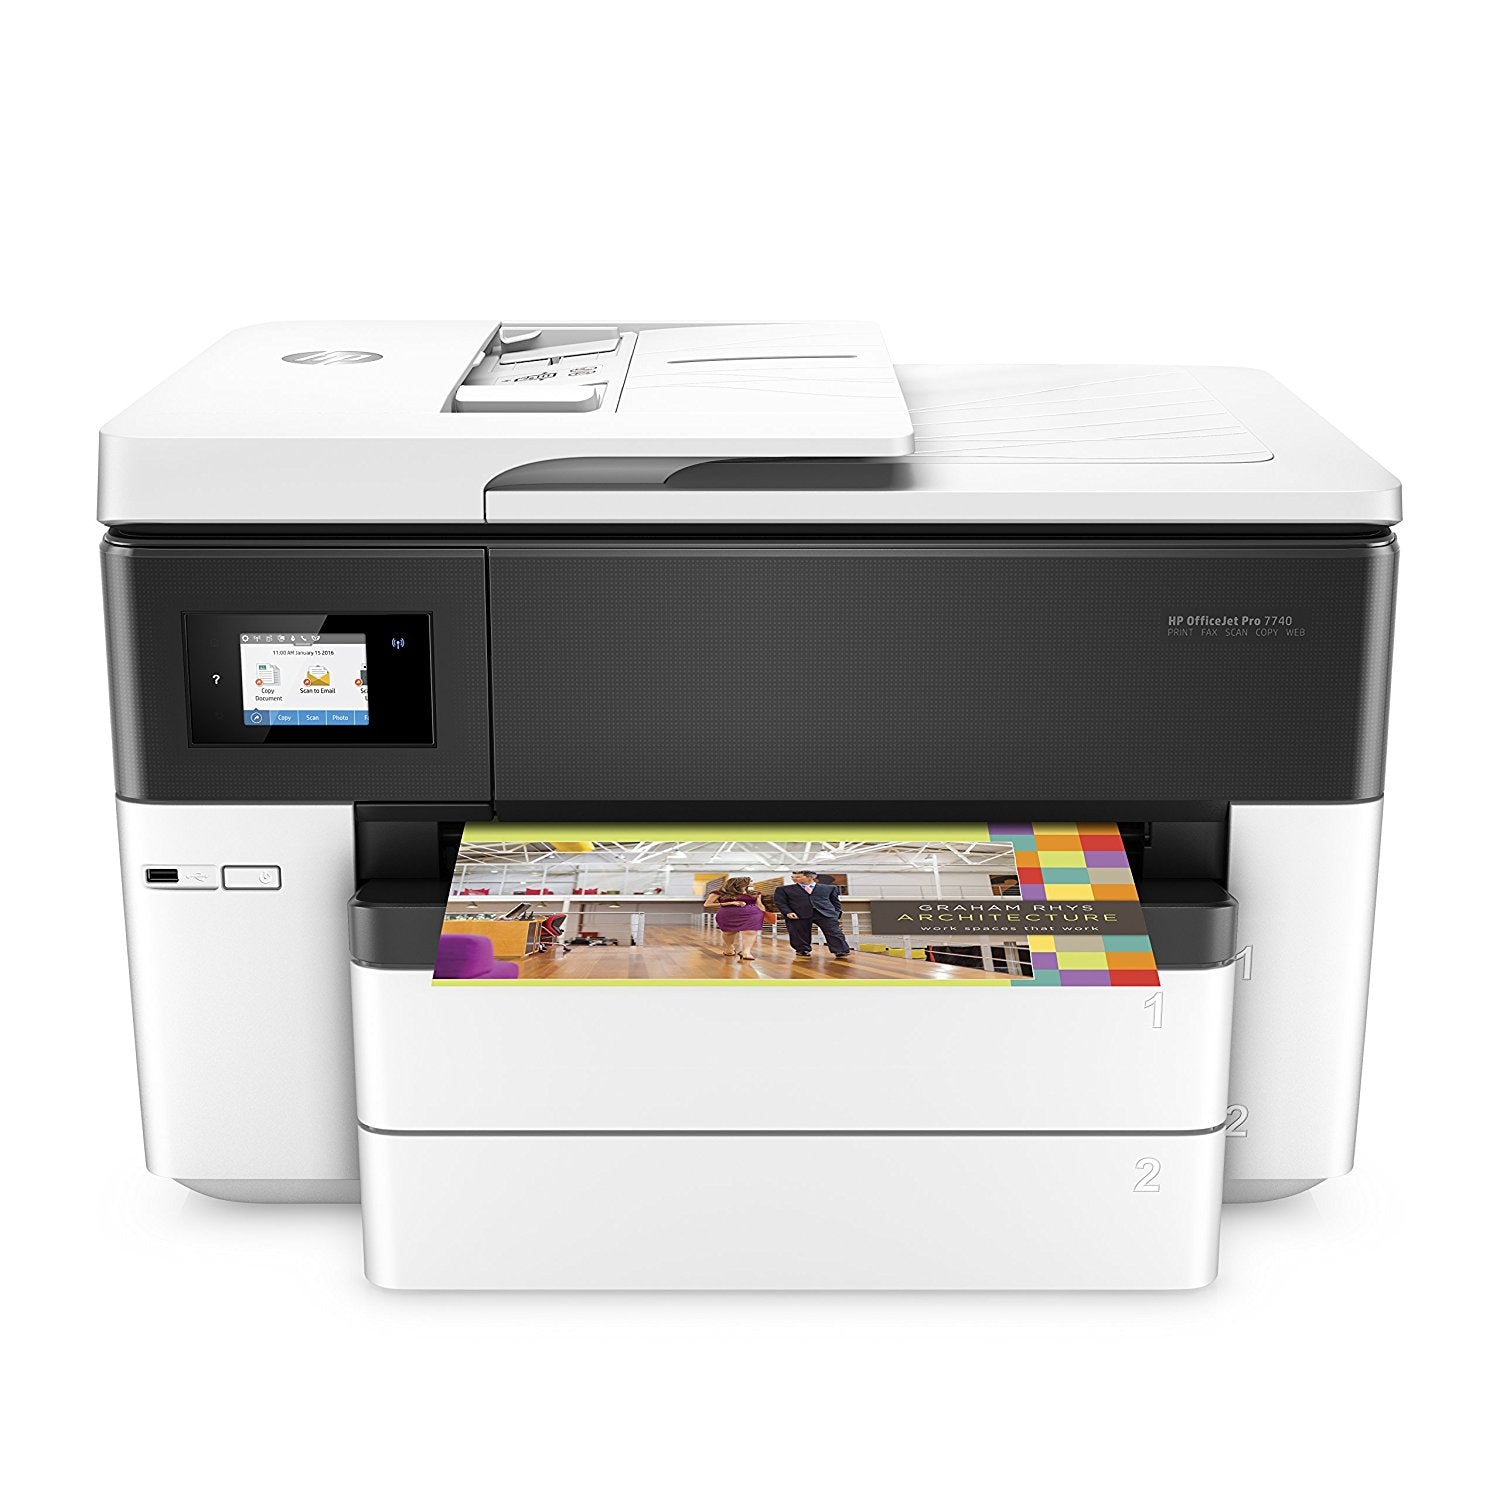 Print, scan, and copy in standout color on sizes up to 11 x 17 inches (A3), for bold documents and presentations at up to 50% less cost per page than color laser. Fax up to 8.5 x 14 inches (21.6 x 35.6 cm).  Dynamic security: Cartridges with non-HP chips might not work today or in the future.  FeaturesHigh-impact 11 x 17 inch printingAutomatic two-sided printing, fast print speeds, and an auto document feeder help ease your day.The 35-page ADF handles documents up to legal size (21.6 x 35.6 cm), so you finish duplex jobs quickly.Tap and swipe the smartphone-style color touchscreen for timesaving shortcuts.Increase paper capacity to 500 sheets with the included second 250-sheet paper tray.Present professionally. And affordably.Create vibrant color graphics and deep black text on a variety of papers from letter to tabloid (A3).Produce water-, smear-, and fade-resistant prints that stand up to highlighters.Print more black text and color pages with optional Original HP high-yield ink car